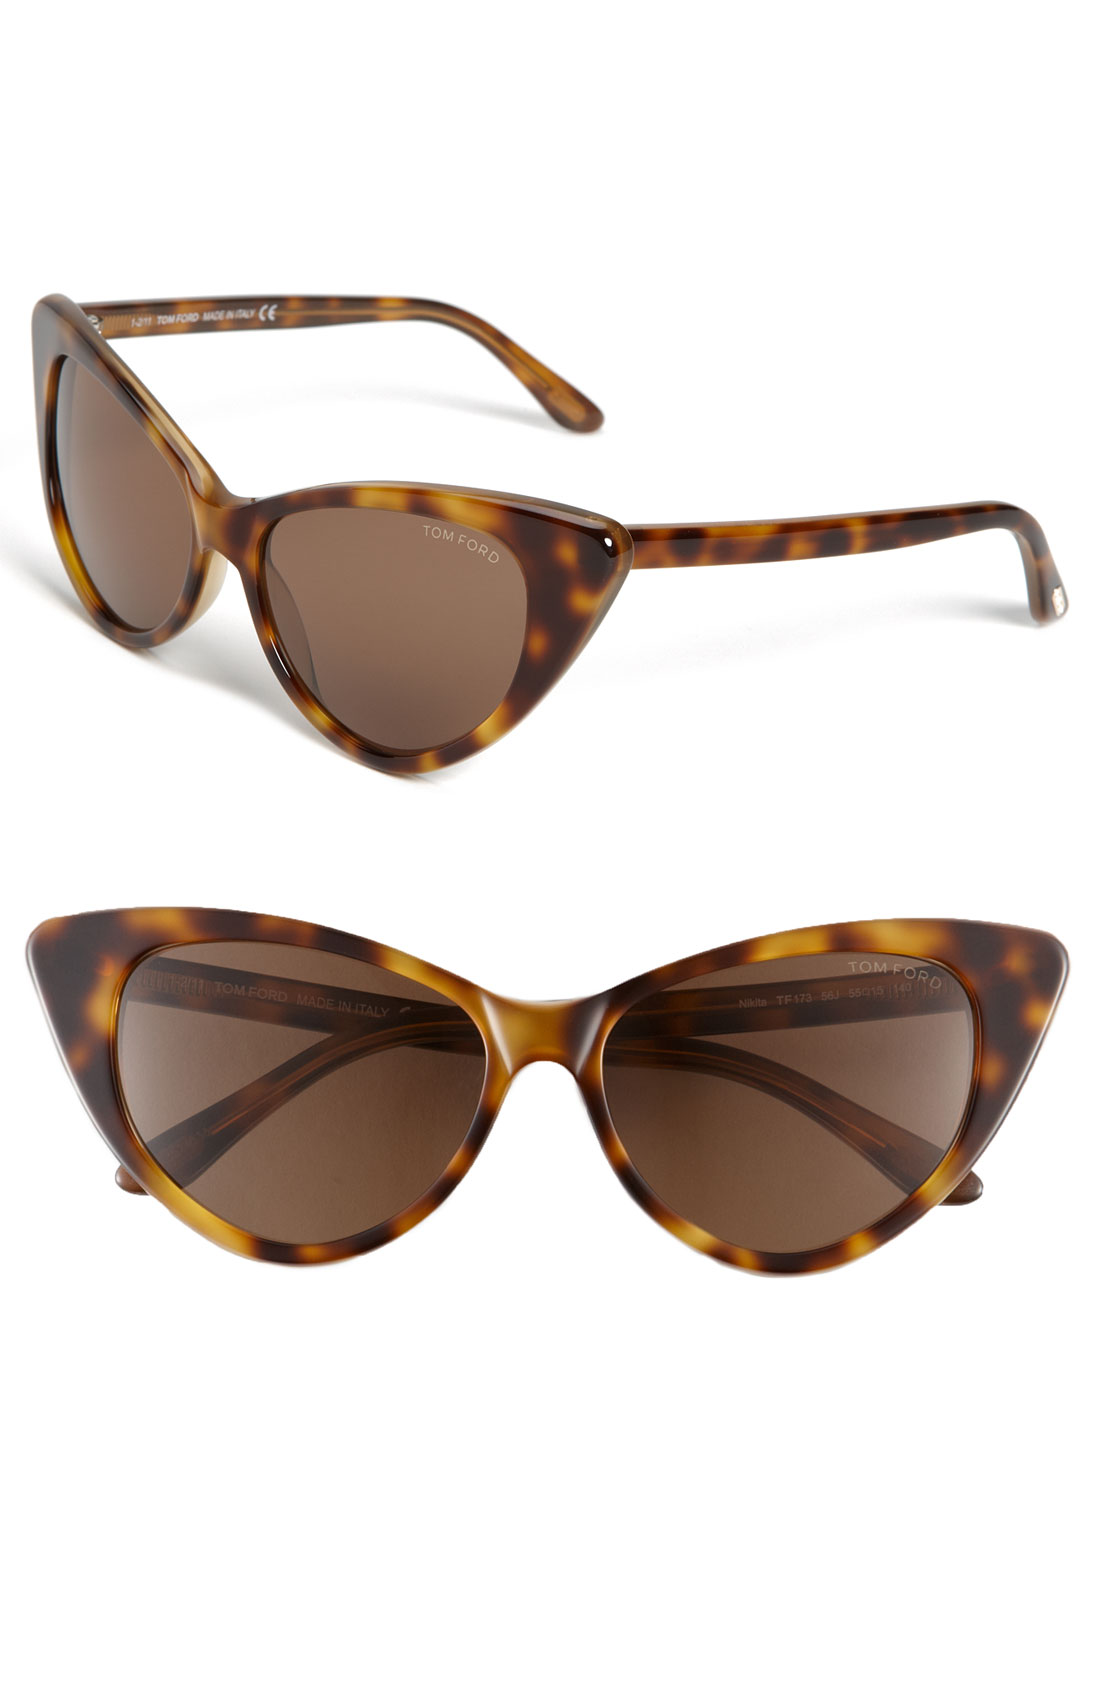 tom ford nikita cat eye sunglasses in brown light havana lyst. Cars Review. Best American Auto & Cars Review